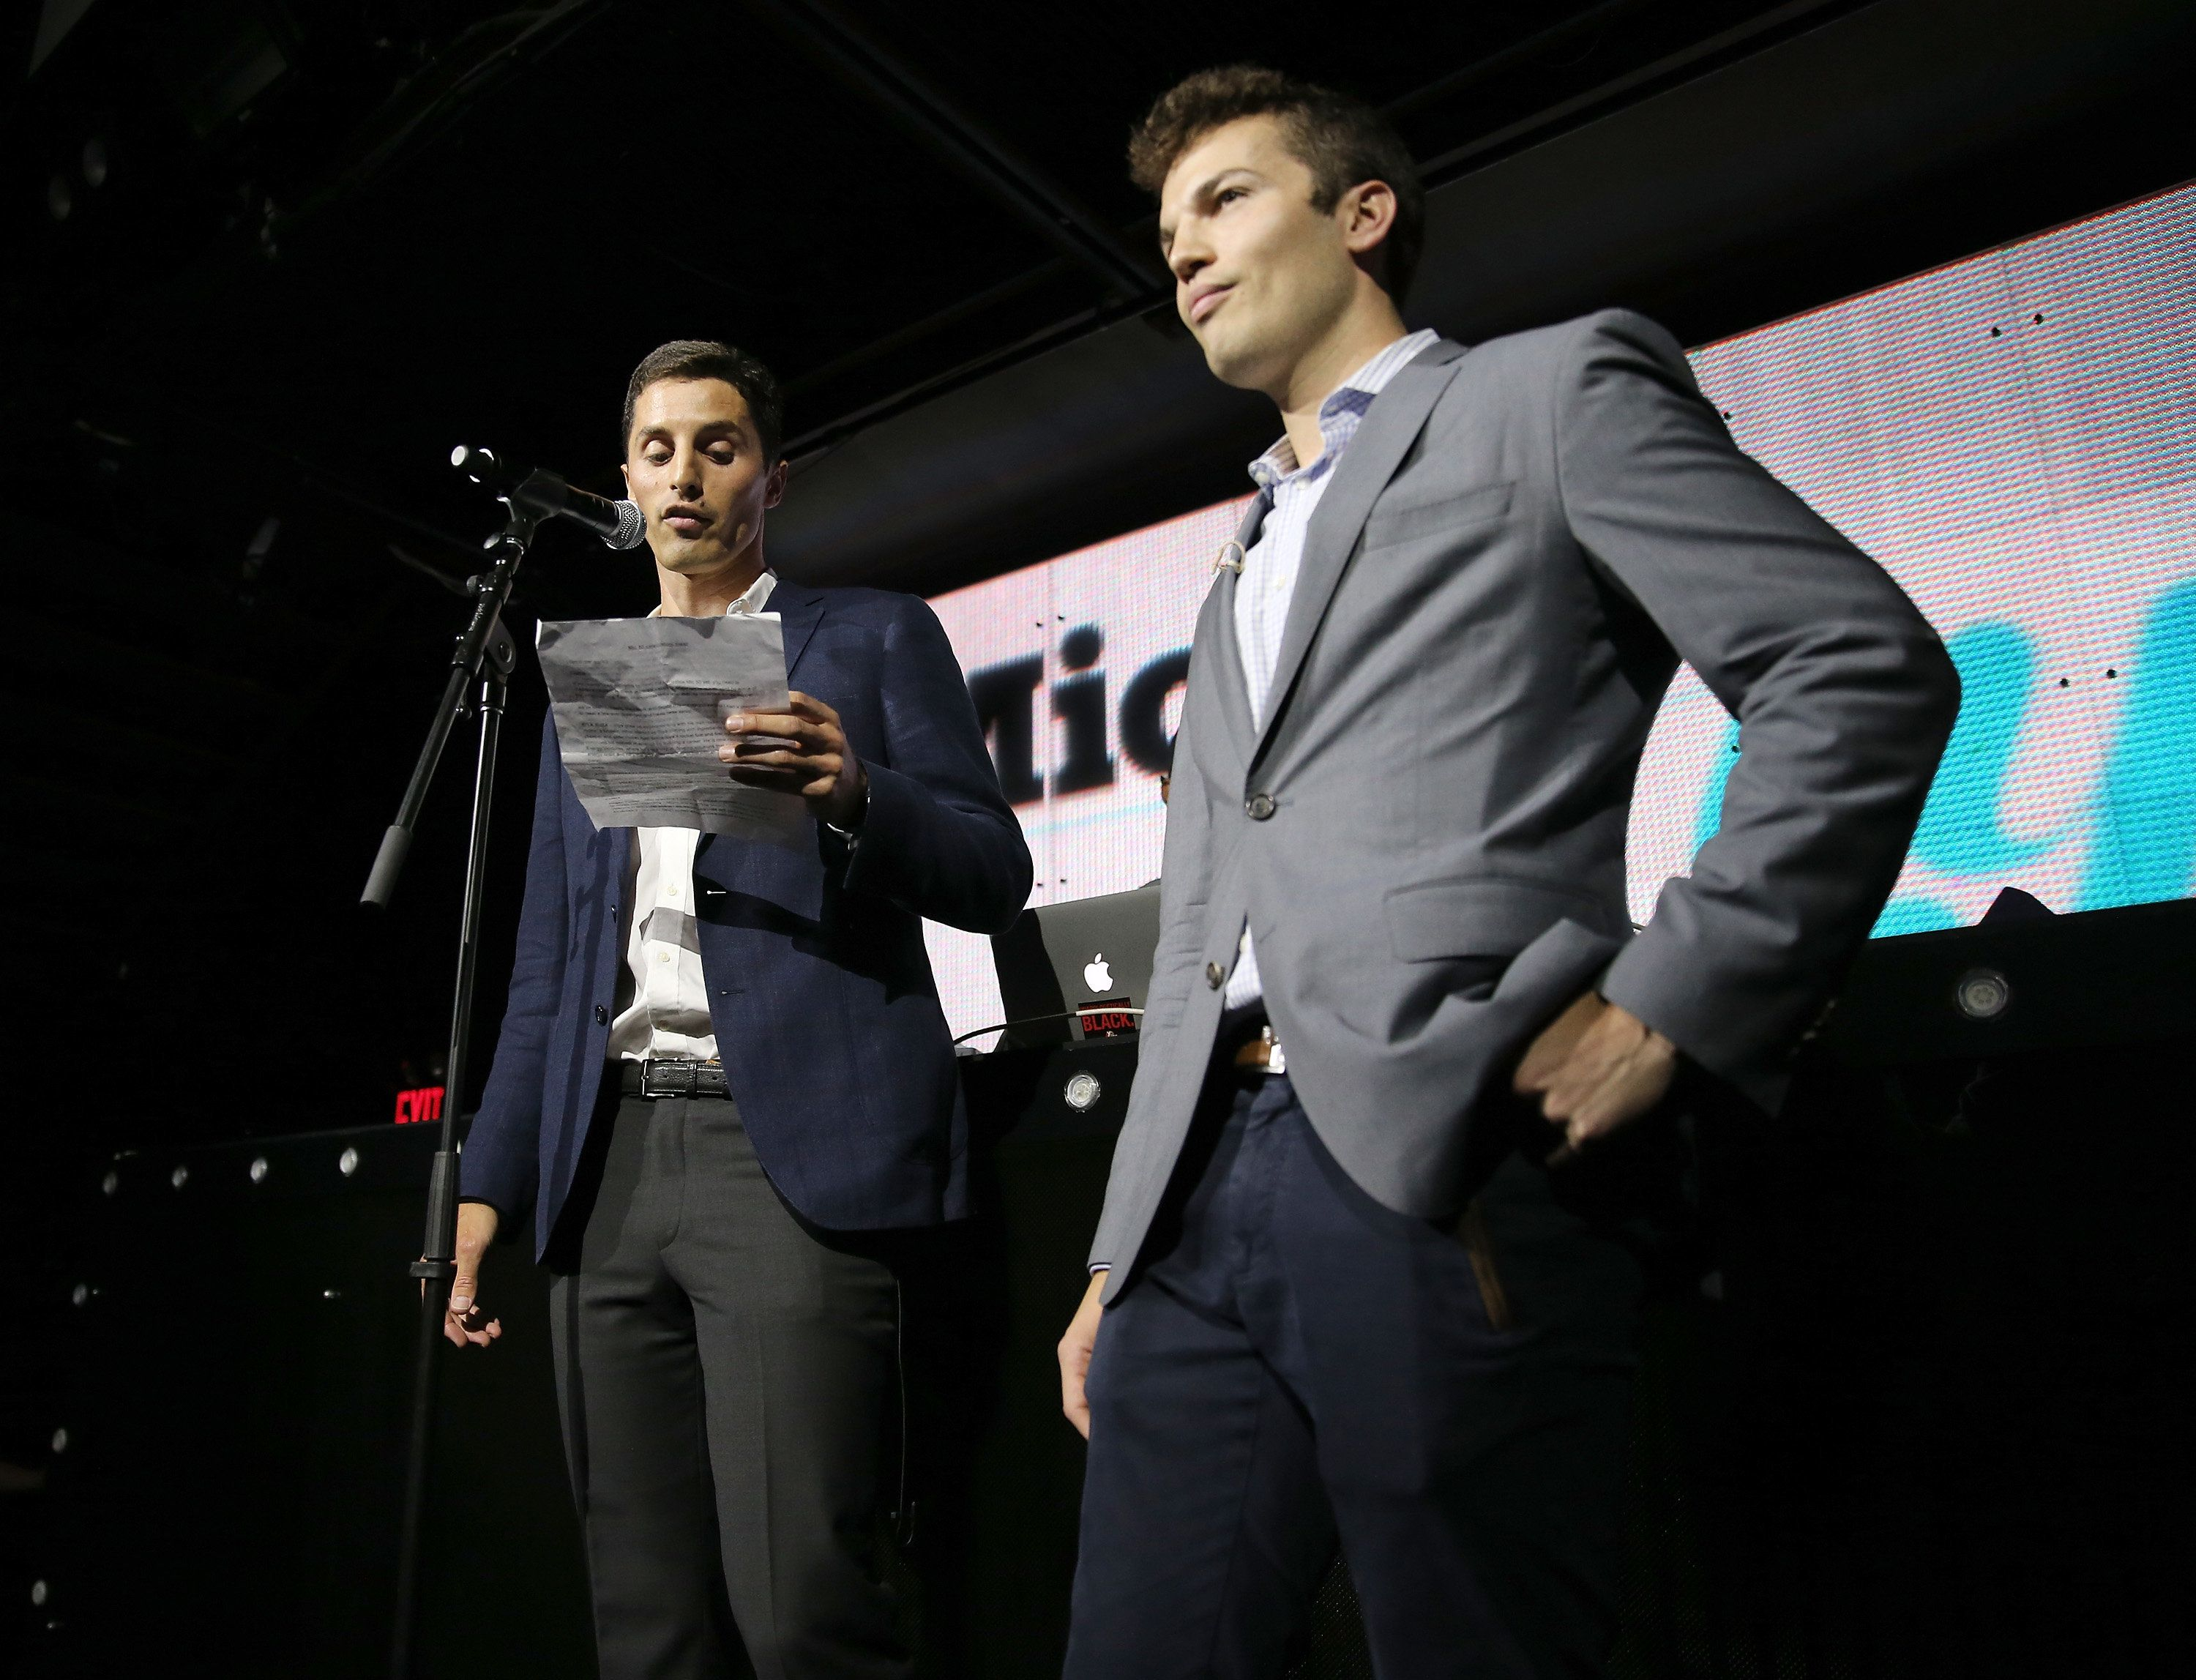 NEW YORK, NY - JUNE 18:  CEO and Co-foudner of Mic.com Chris Altchek (L) and Jake Horowitz speak onstage at GREY GOOSE Vodka Hosts The Inaugural Mic50 Awards at Marquee on June 18, 2015 in New York City.  (Photo by Neilson Barnard/Getty Images for Grey Goose)